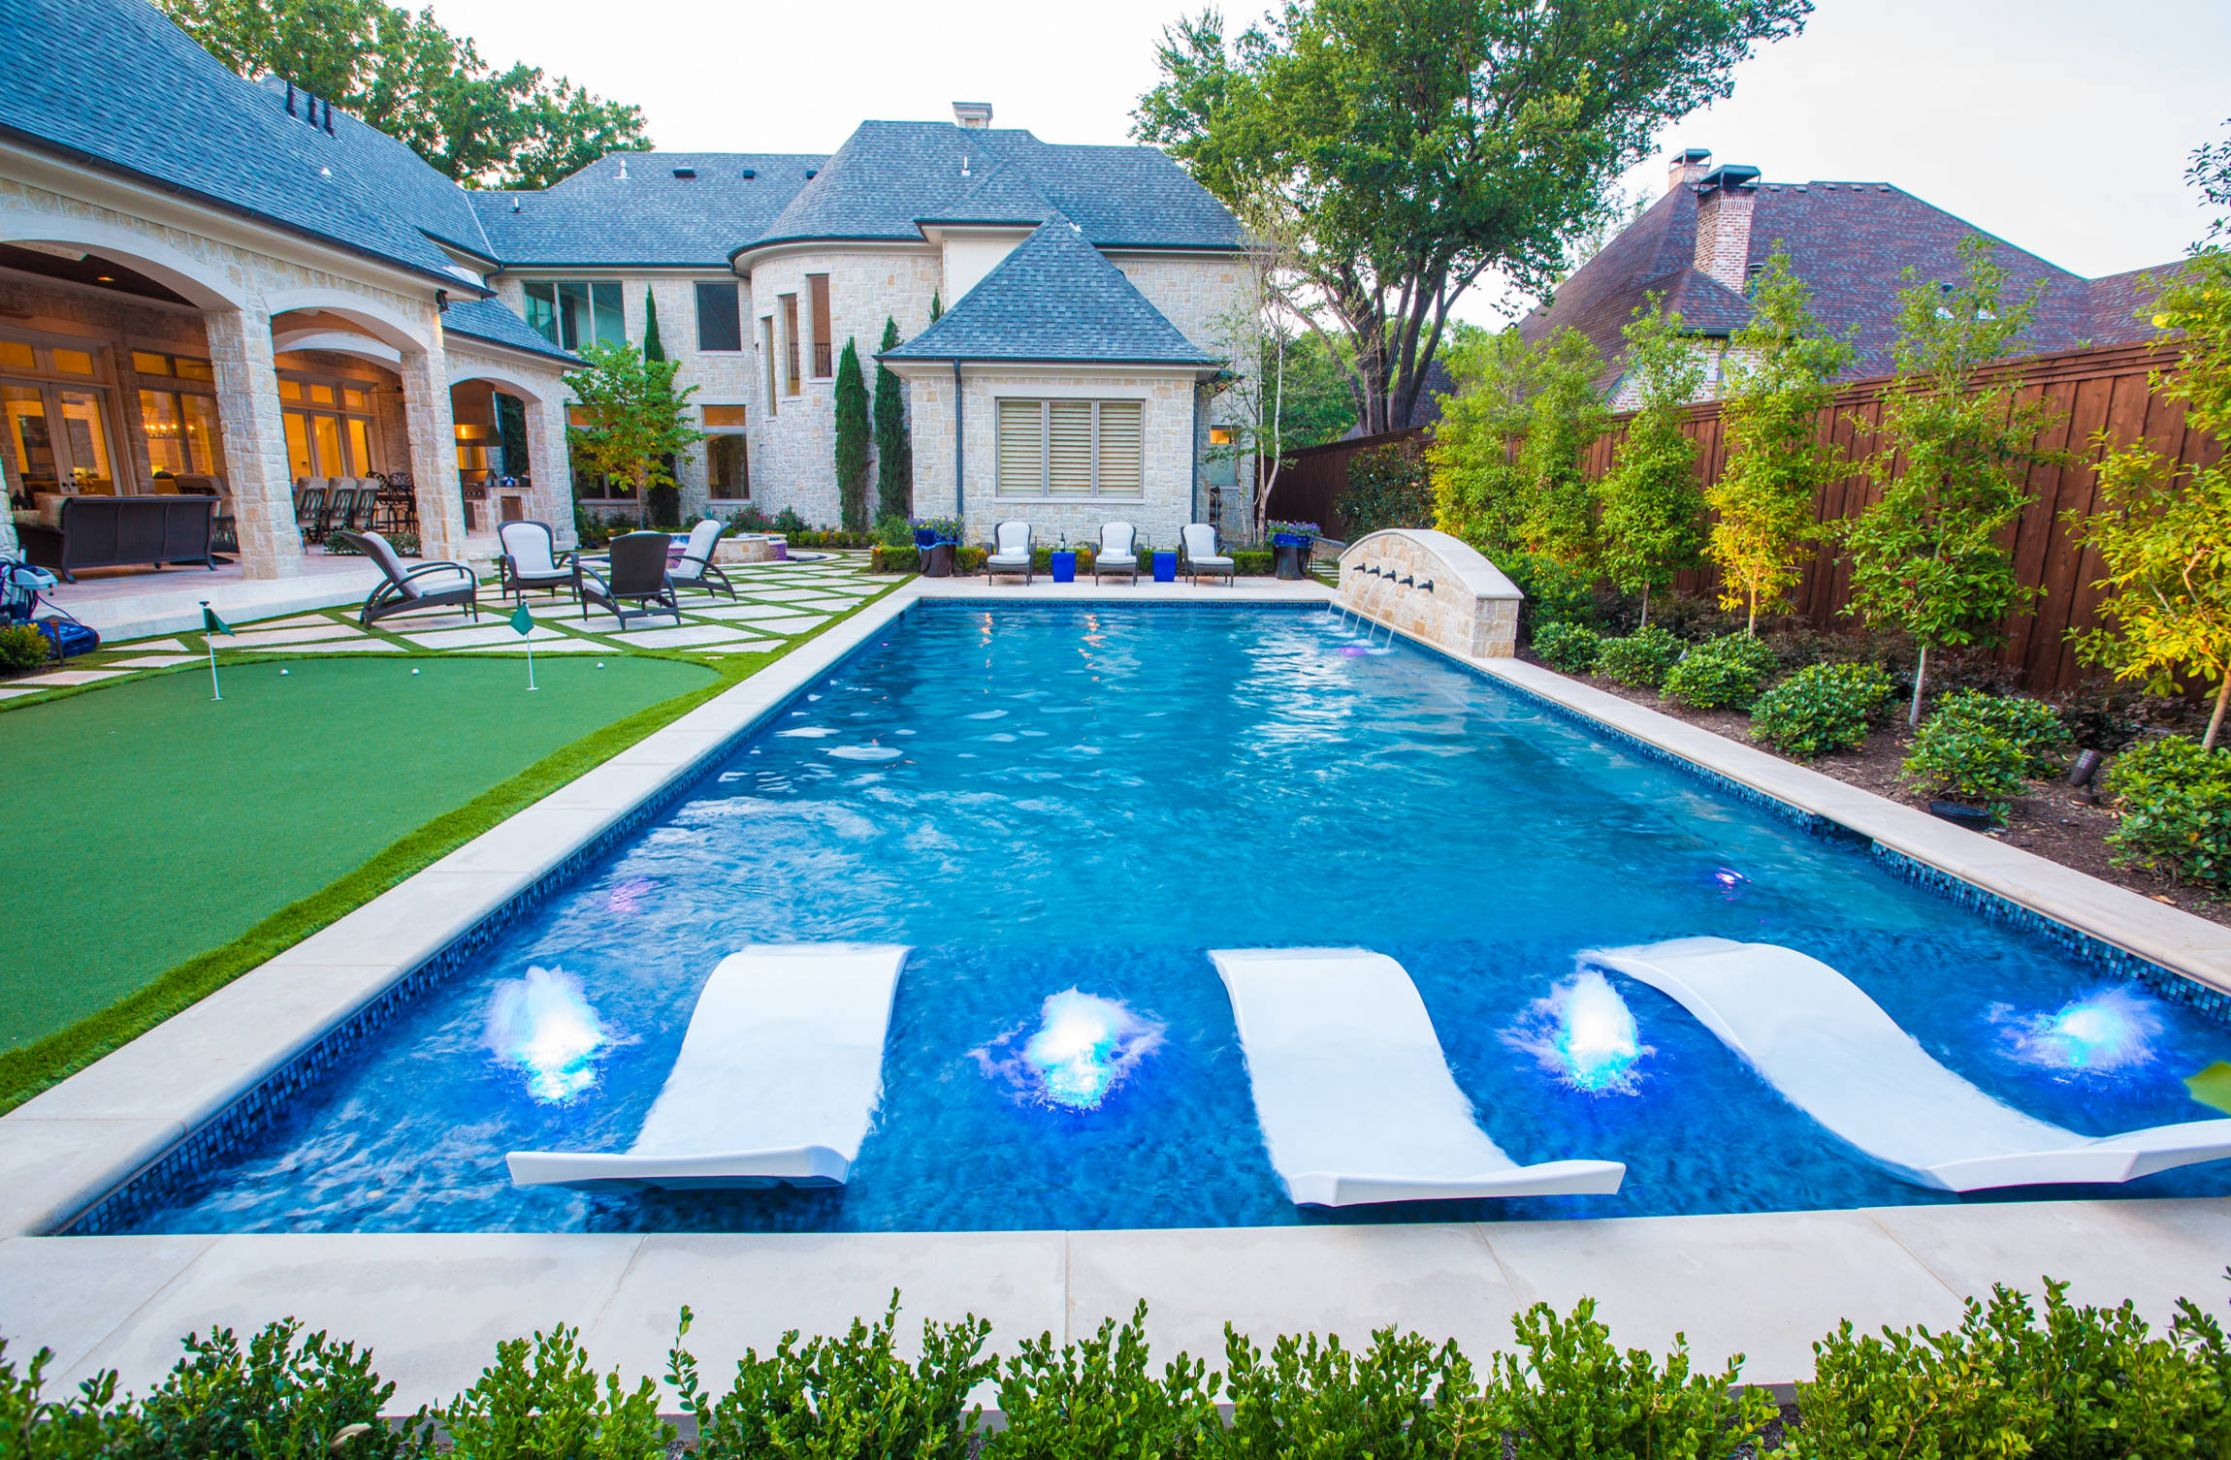 11 Beautiful Pool Pictures & Ideas | Houzz - pool enhancement ideas